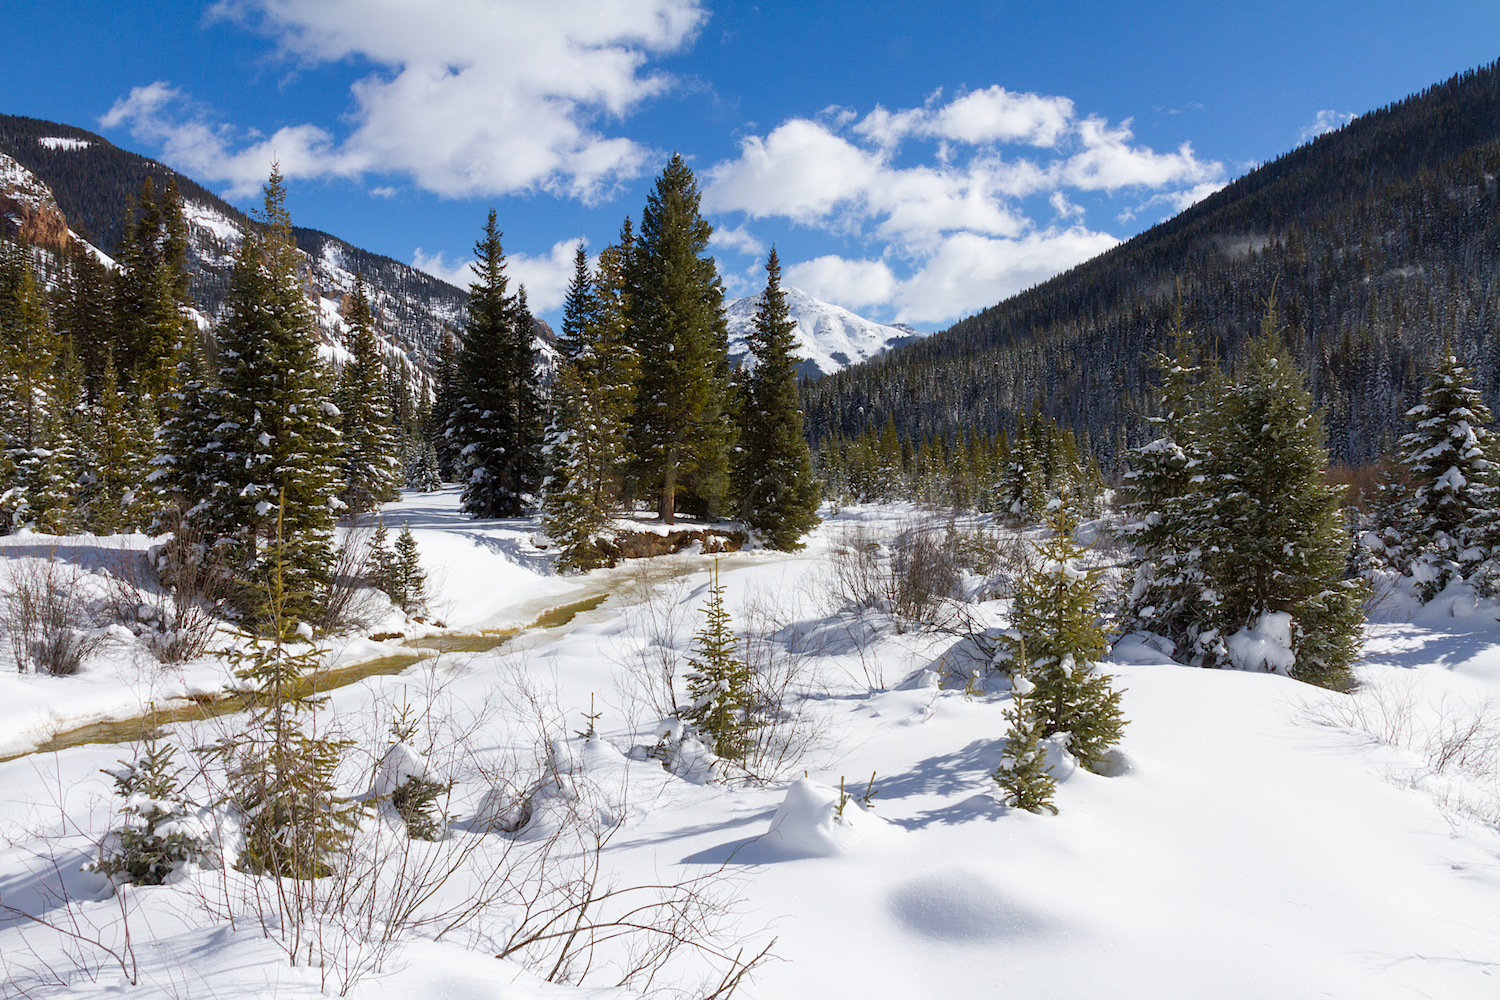 South Mineral Snowshoe, Image # 2749